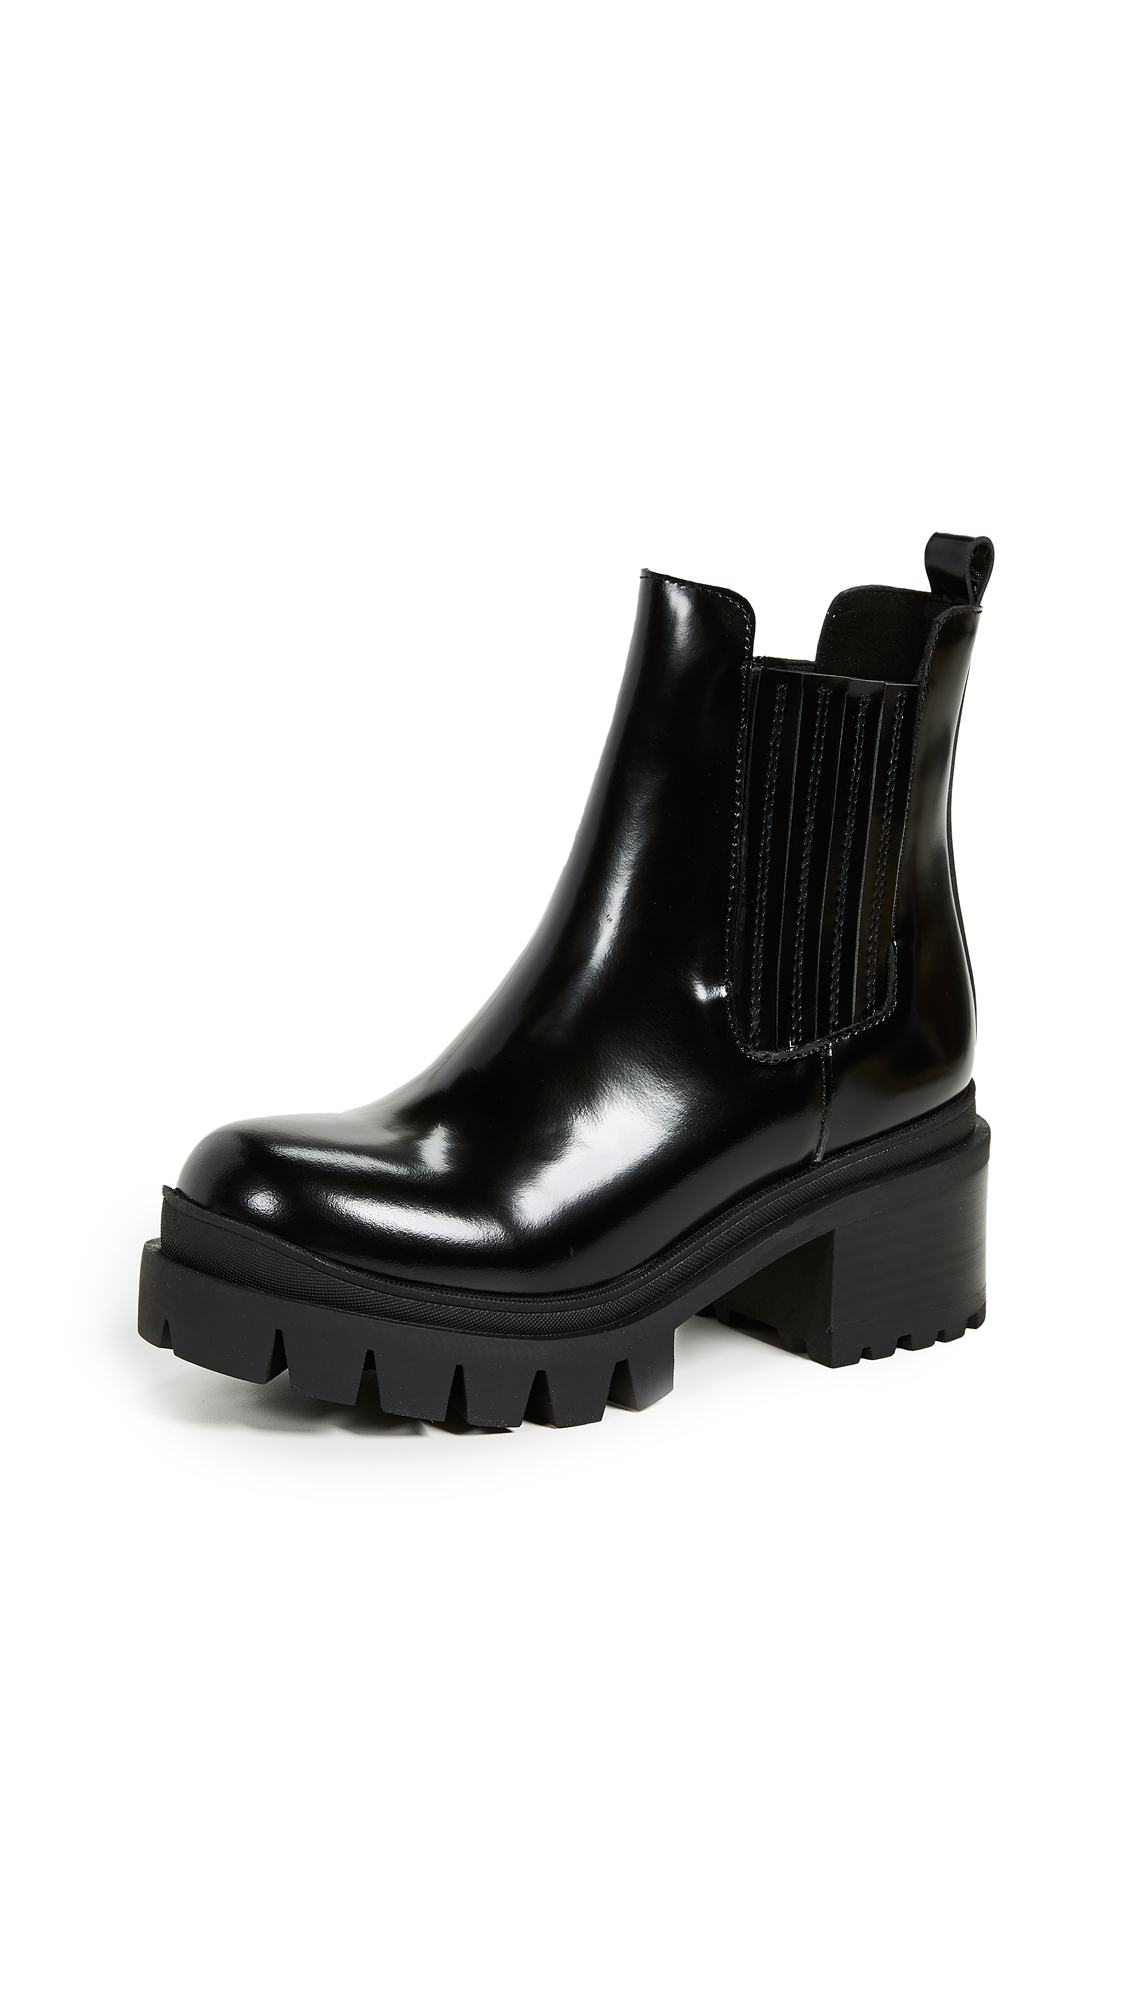 Jeffrey Campbell Fright Lug Sole Chelsea Boots - Black Box